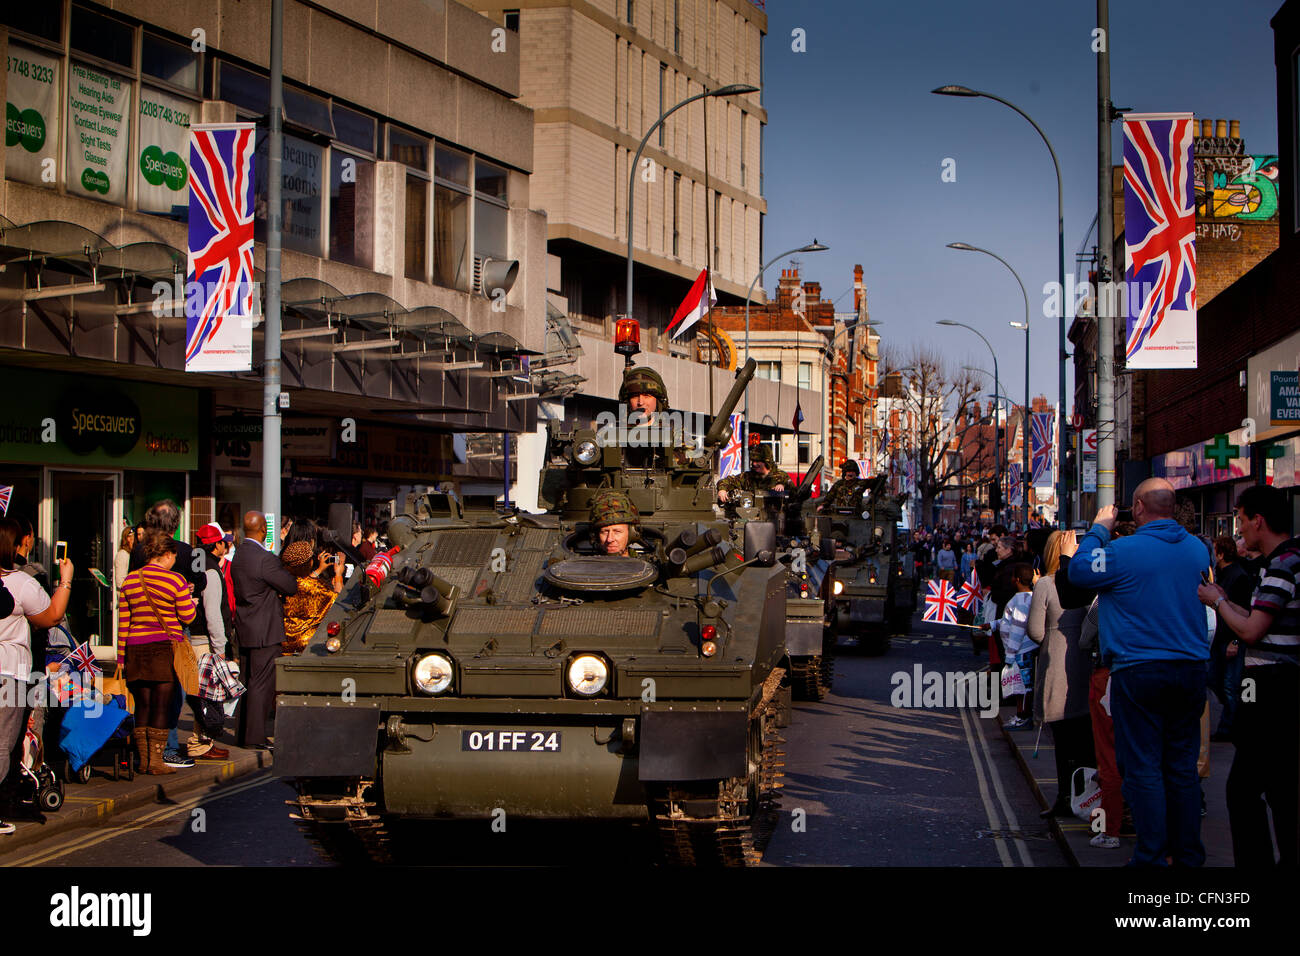 tanks from the Territorial Army regiment The Royal Yeomanry driving through the streets of Hammersmith - Stock Image